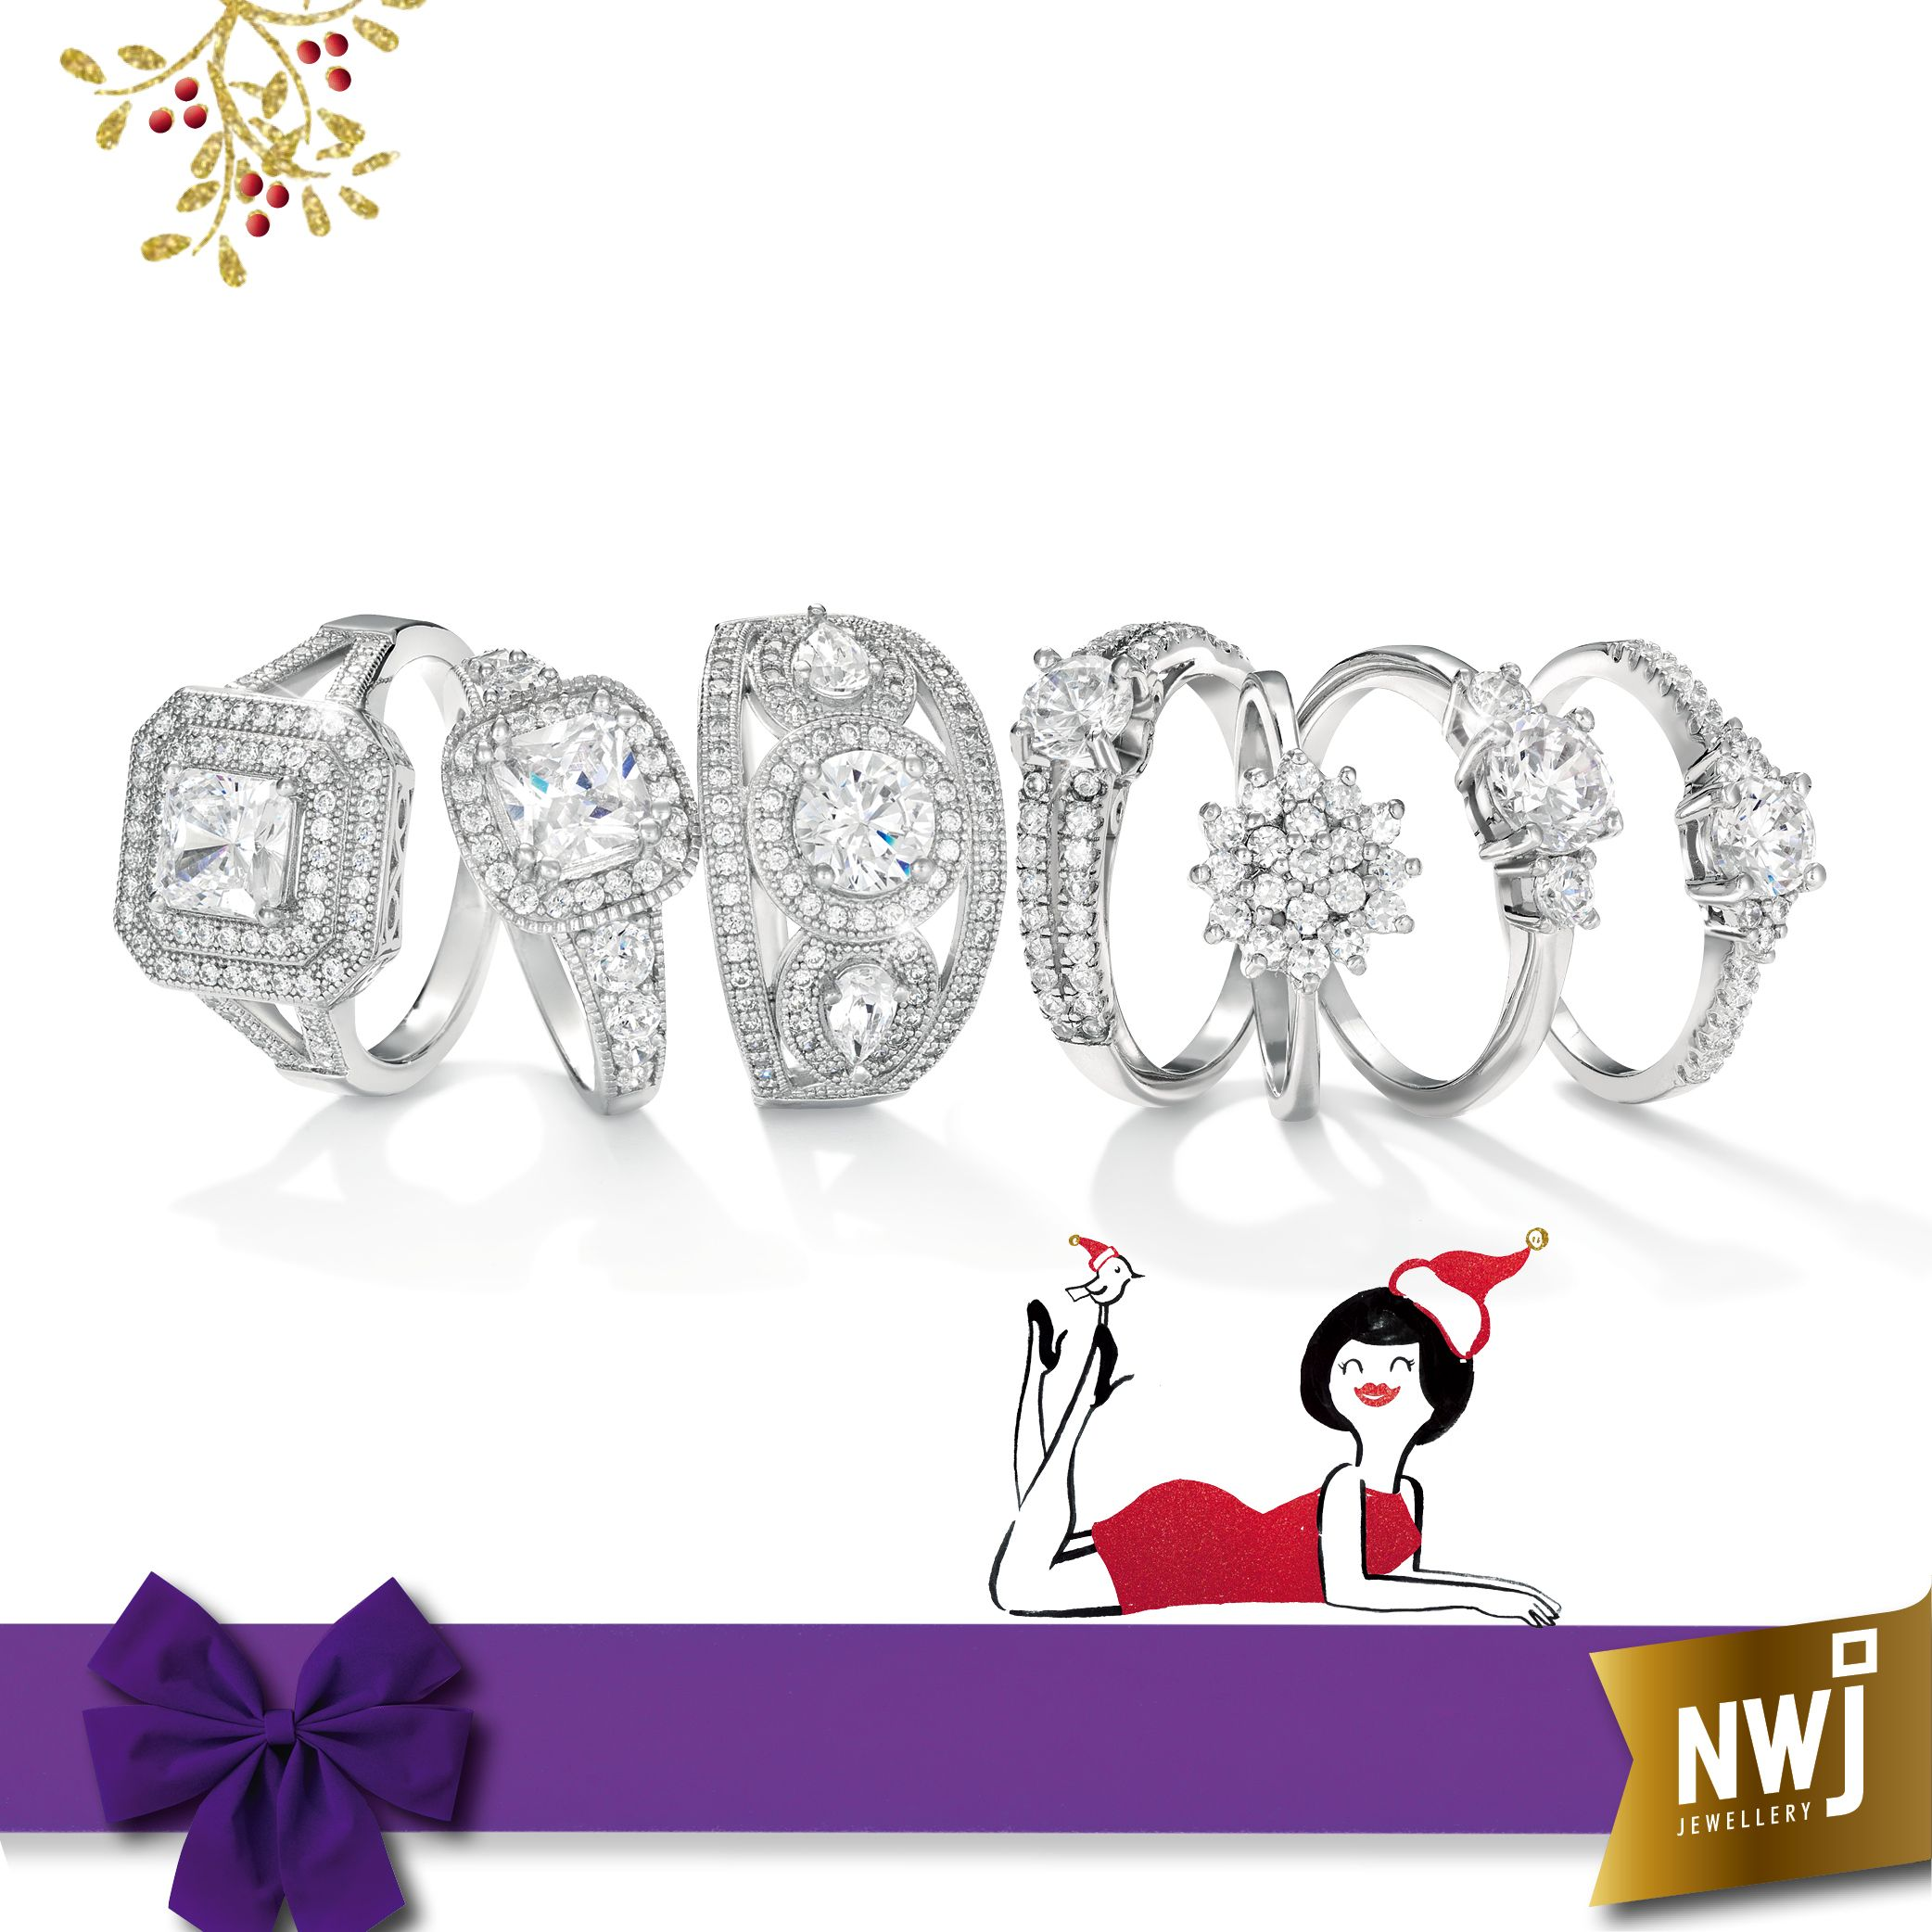 Twinkle Twinkle little CZ and Silver Rings see more of our